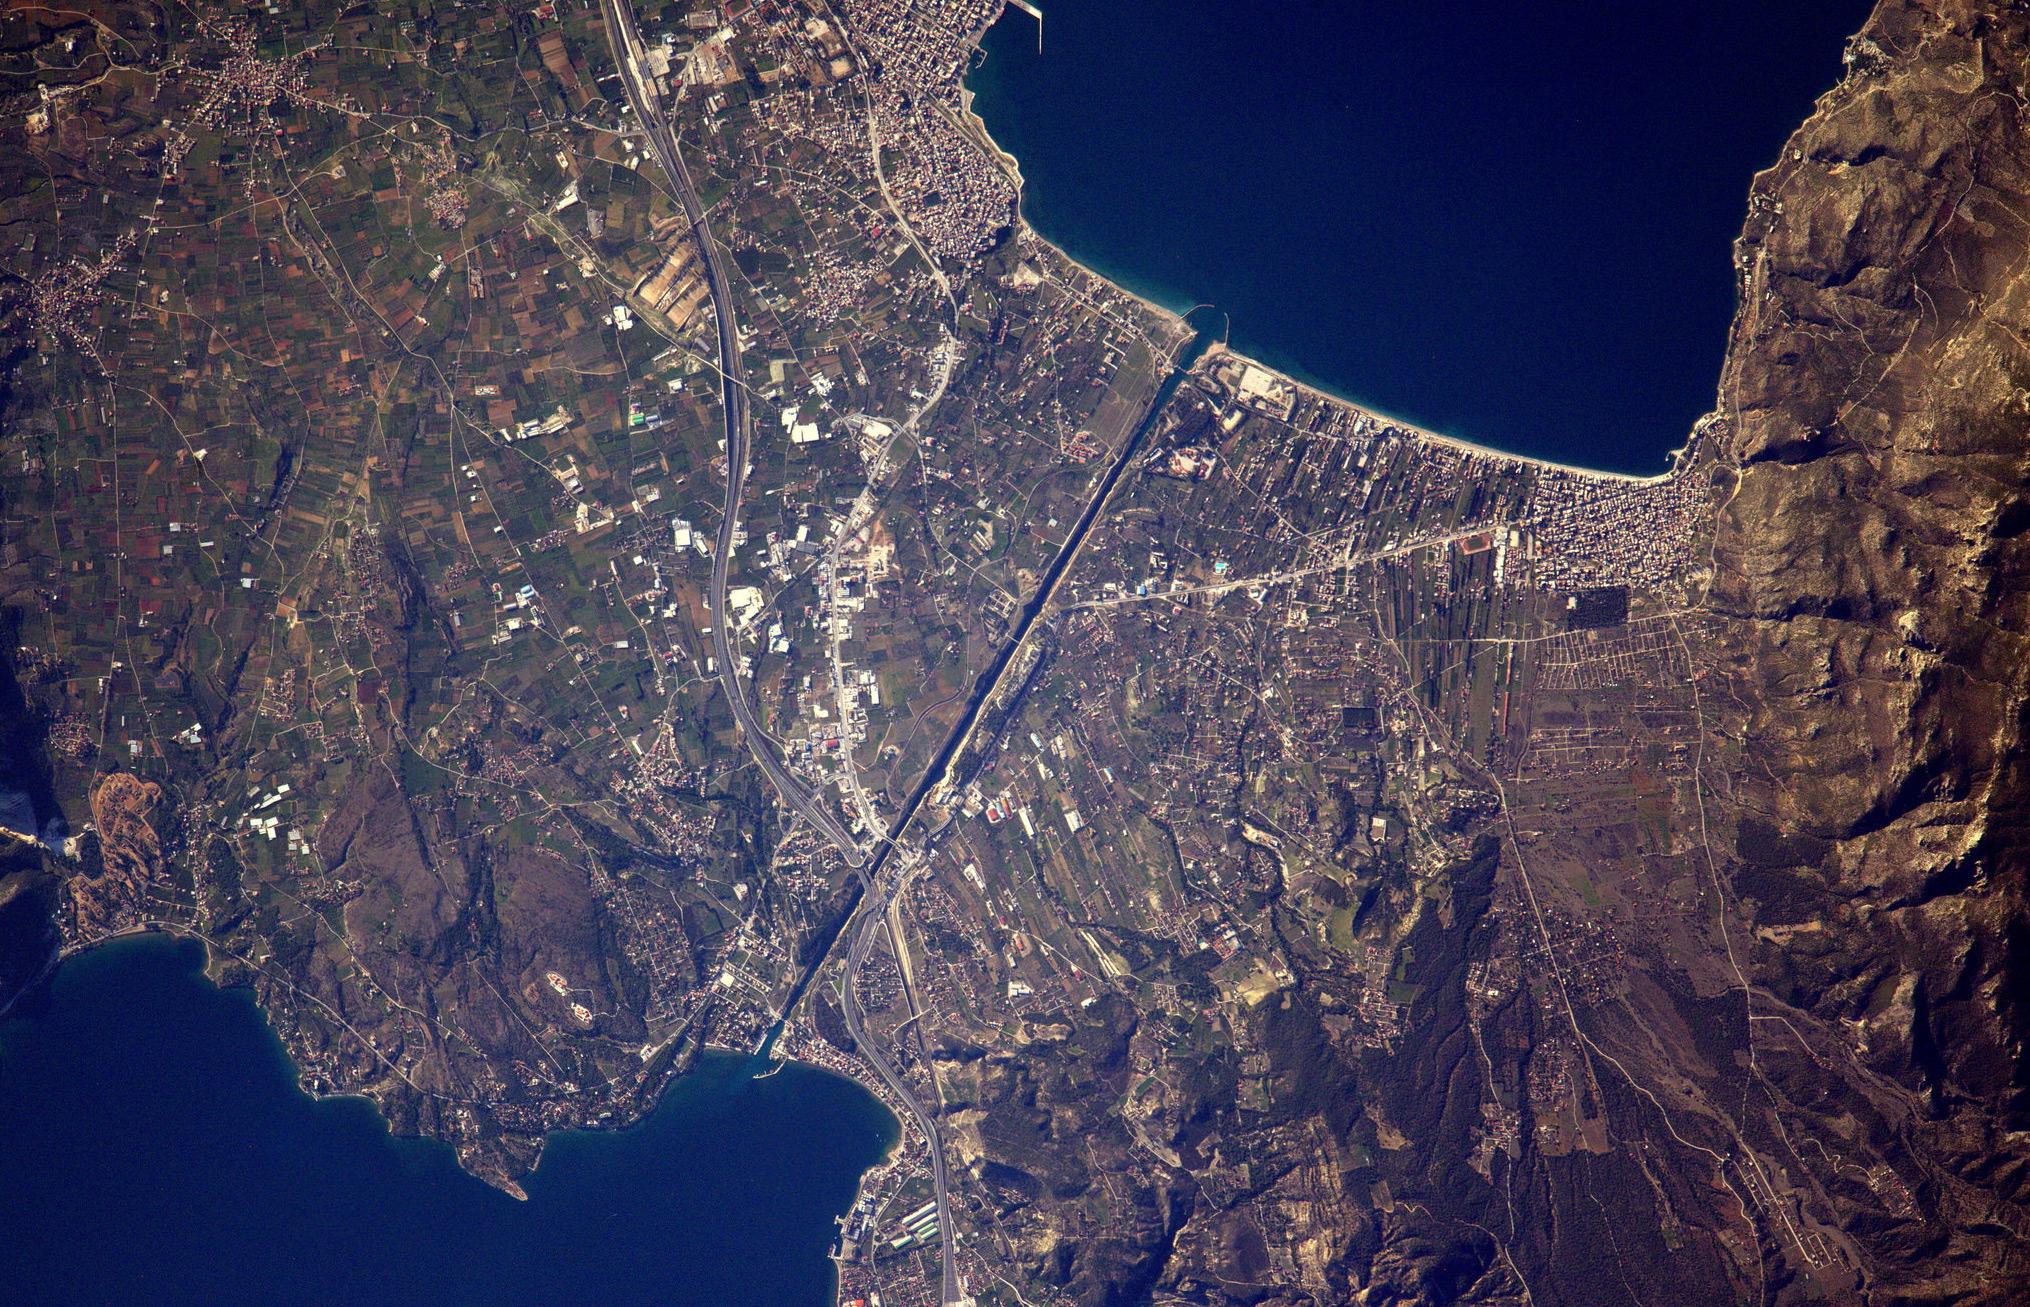 https://www.photogriffon.com/photos-du-monde/BEST-100-PICTURES-OF-EARTH-of-Thomas-Pesquet-ISS-ESA-NASA/big/Canal-de-Corynthe-vue-aerienne-vue-espace-Copyright-Thomas-Pesquet-ESA-NASA.jpg